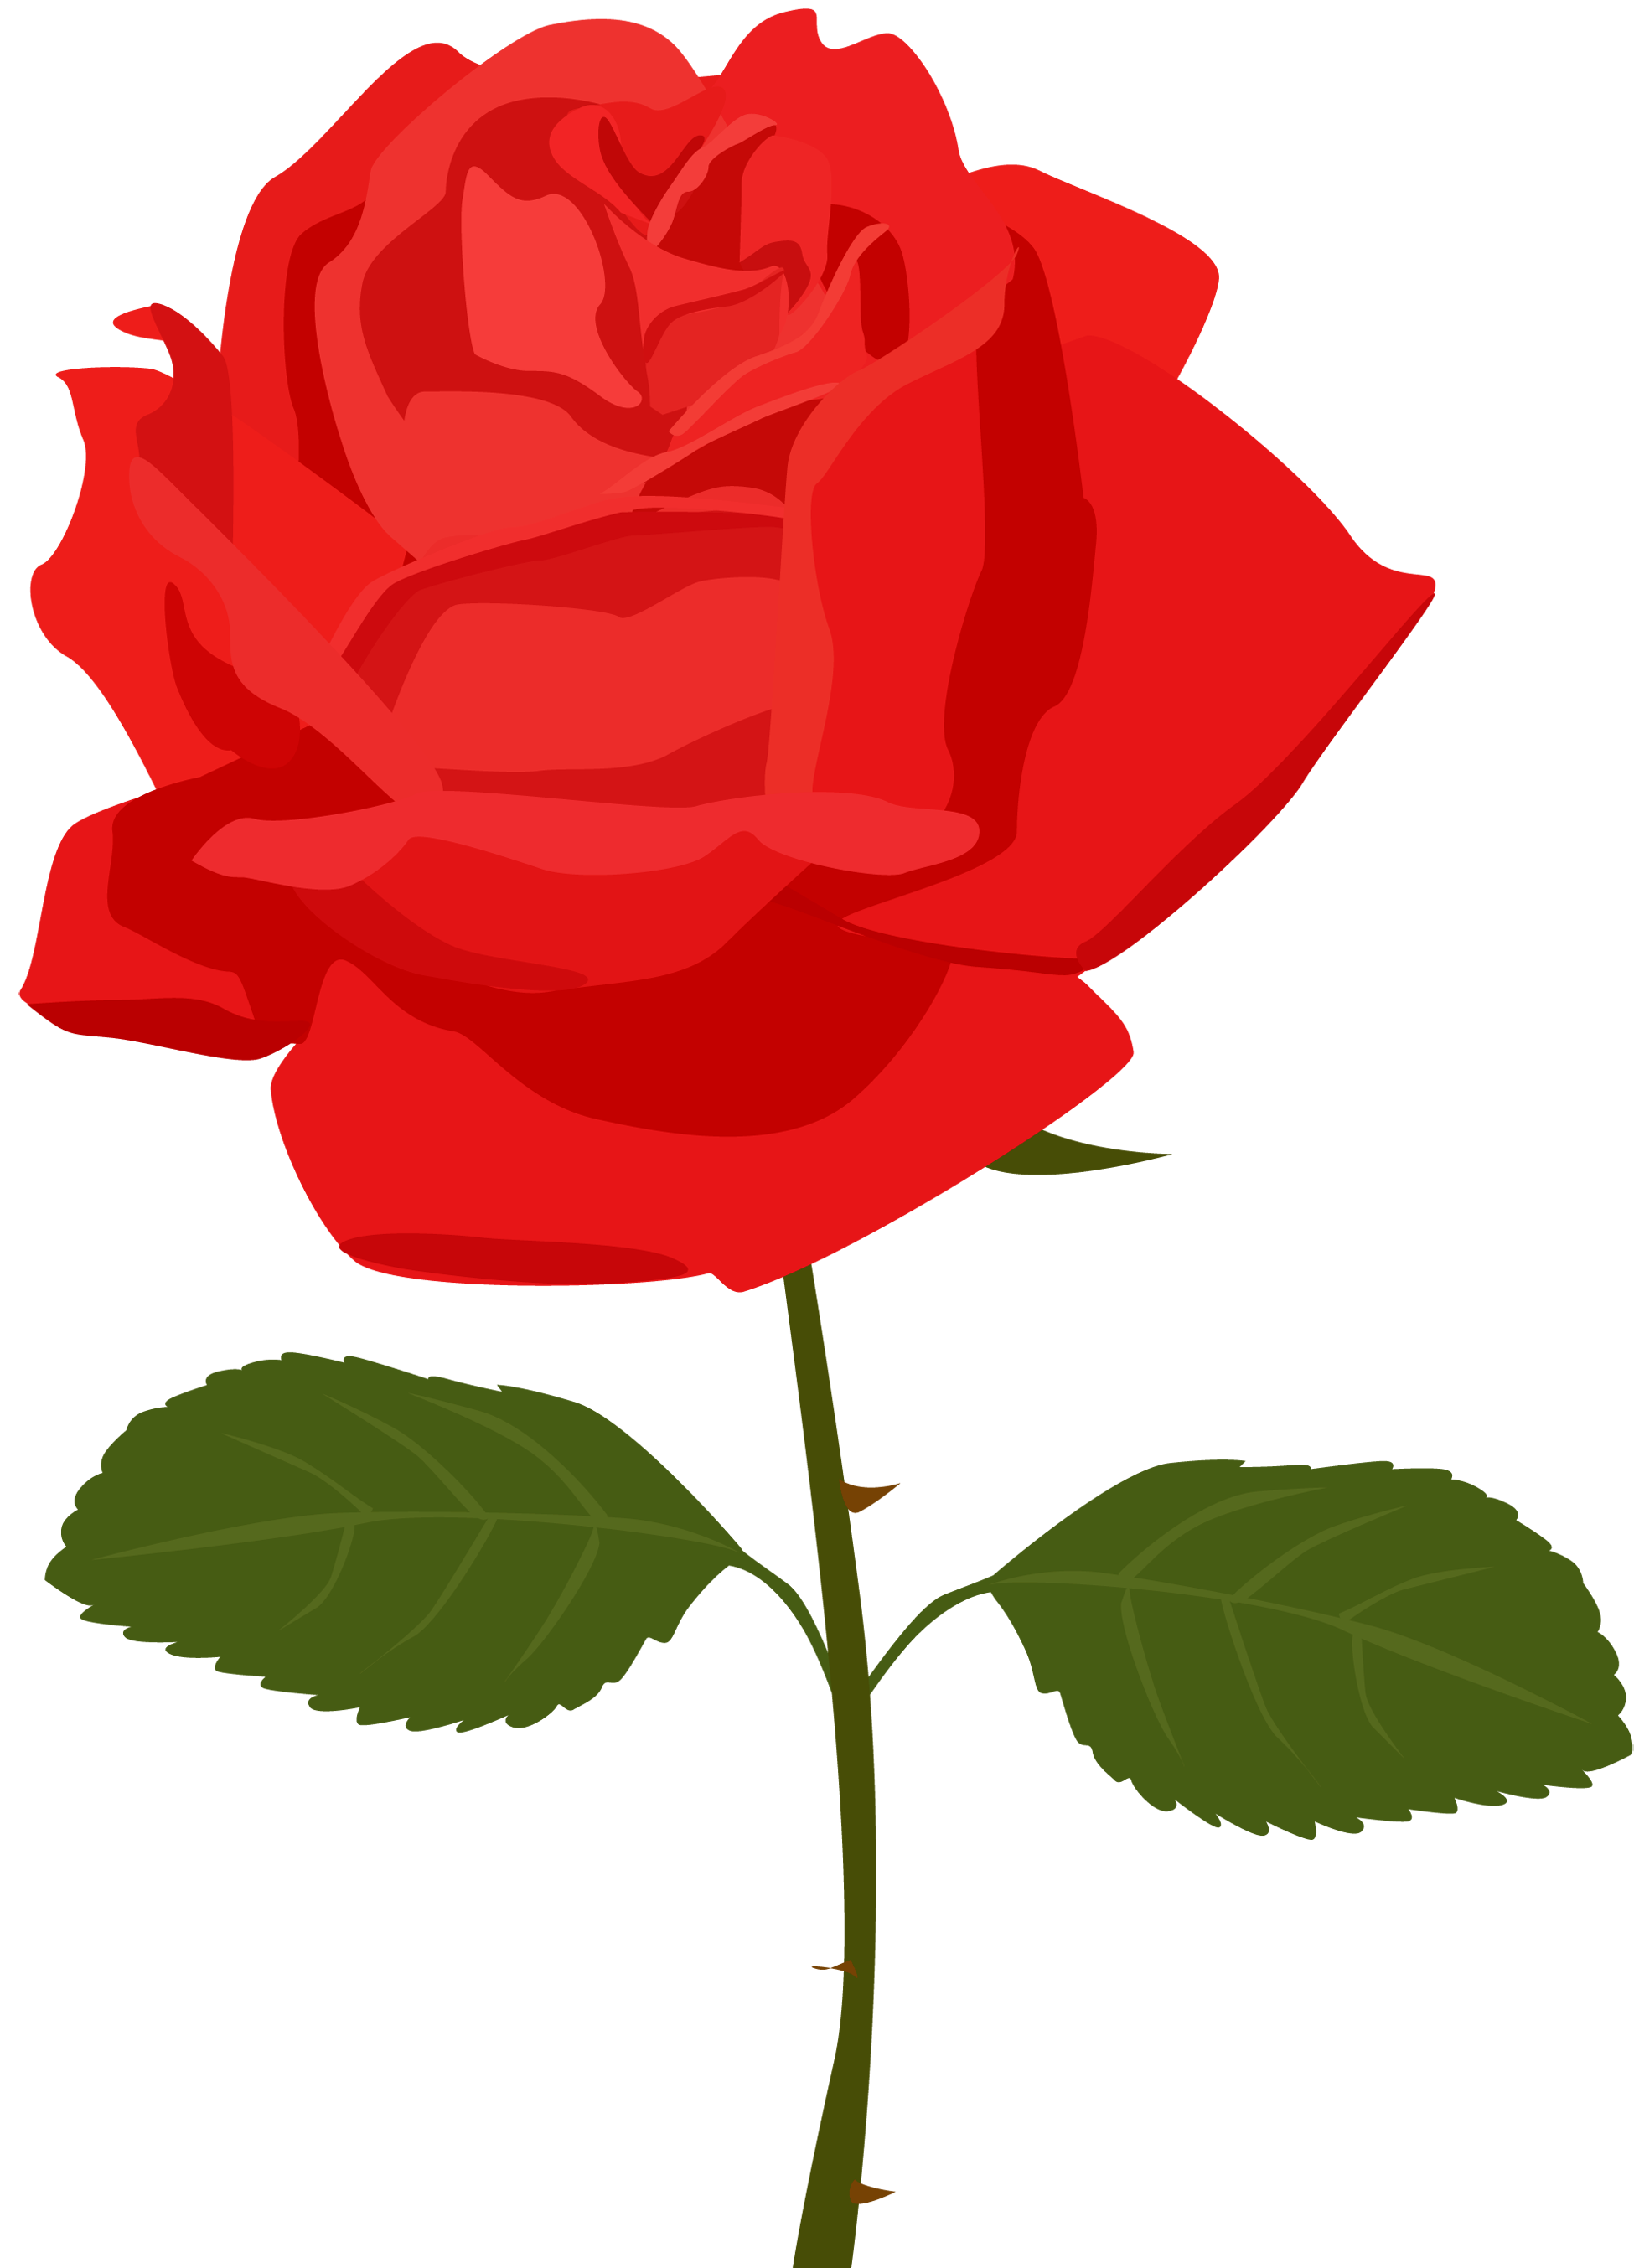 Rosa red clipart #4